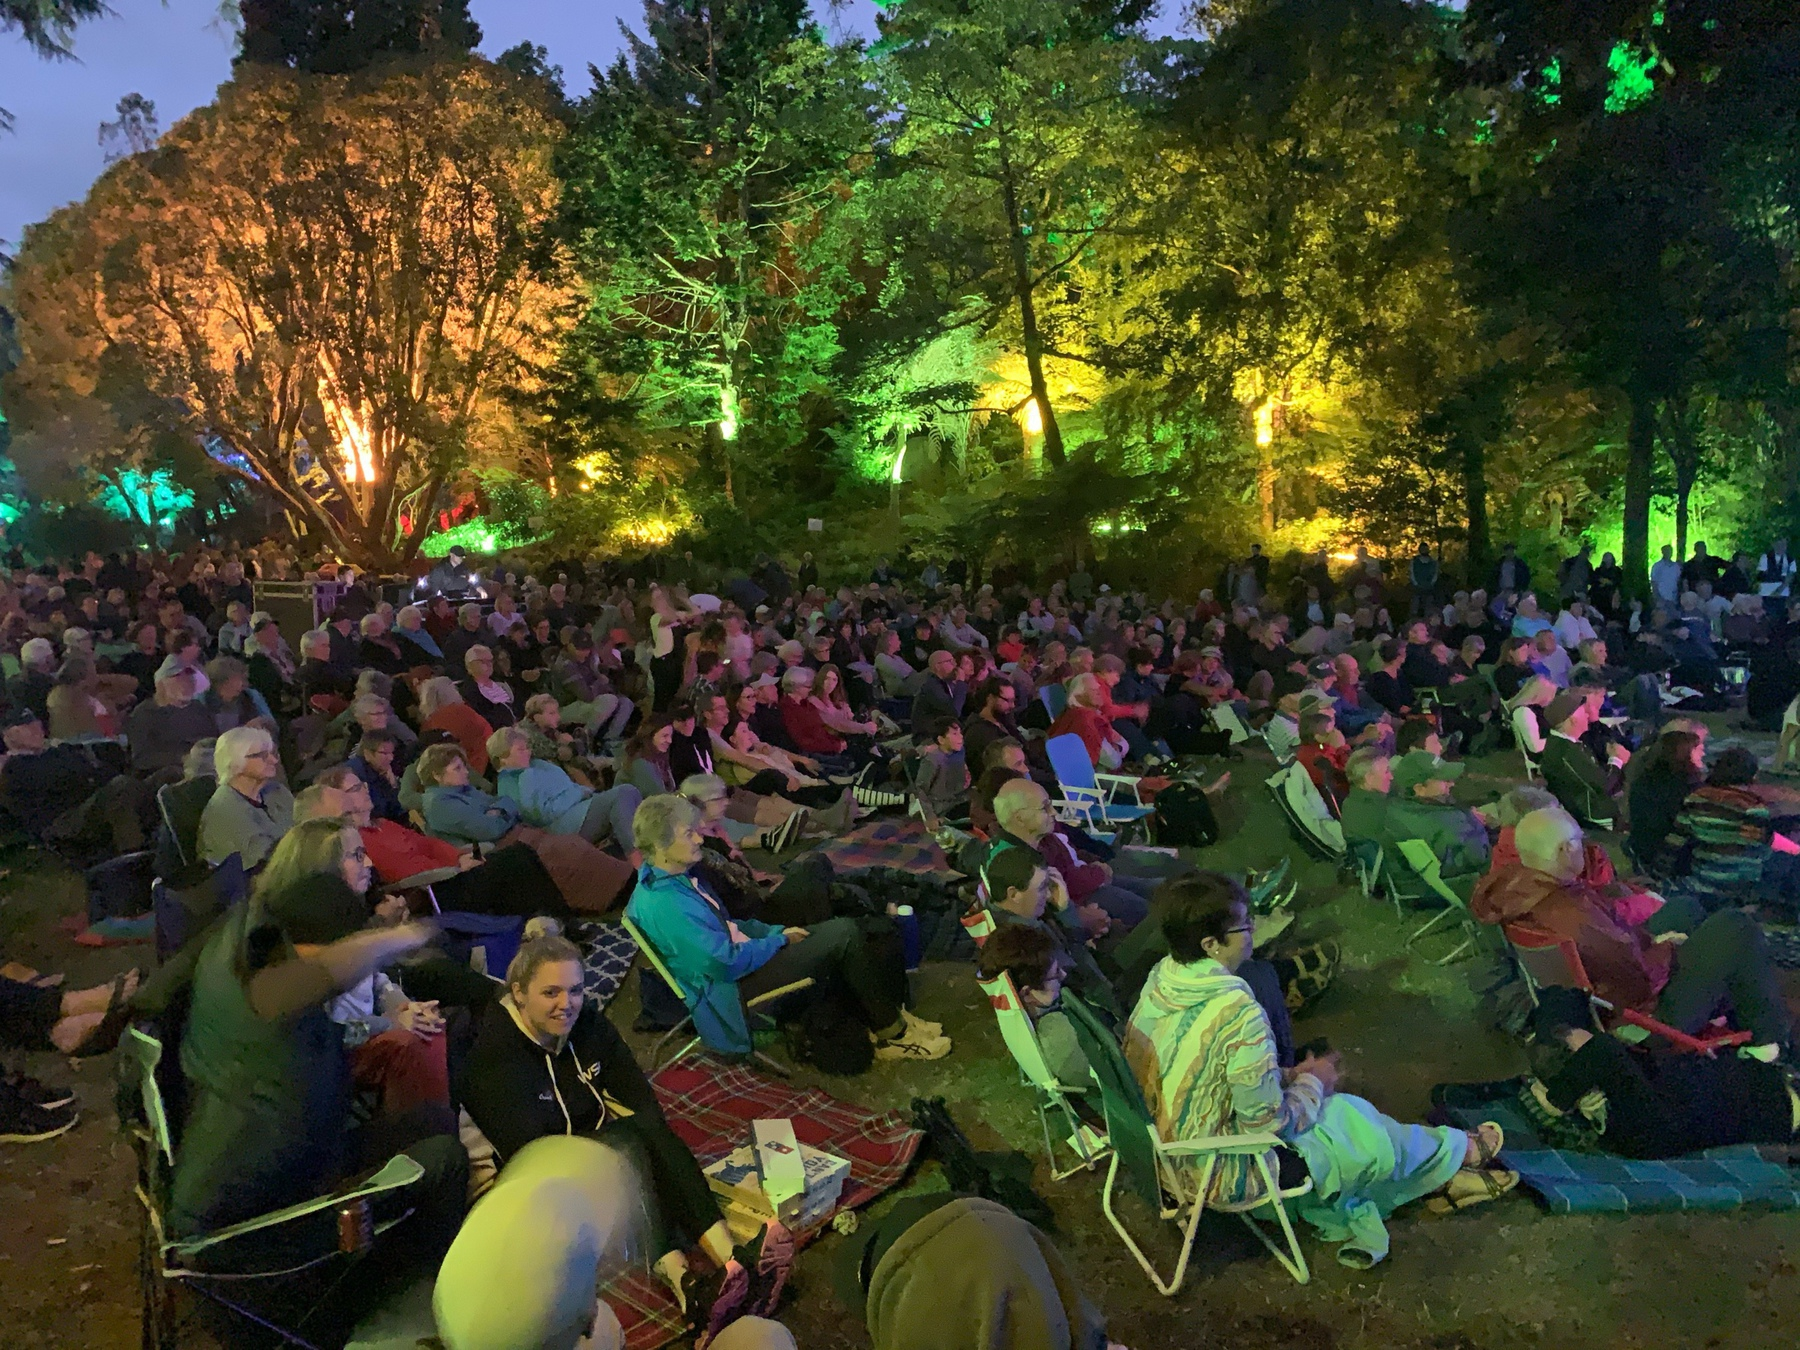 People sitting in audience of the concert at the New Plymouth Festival of Lights